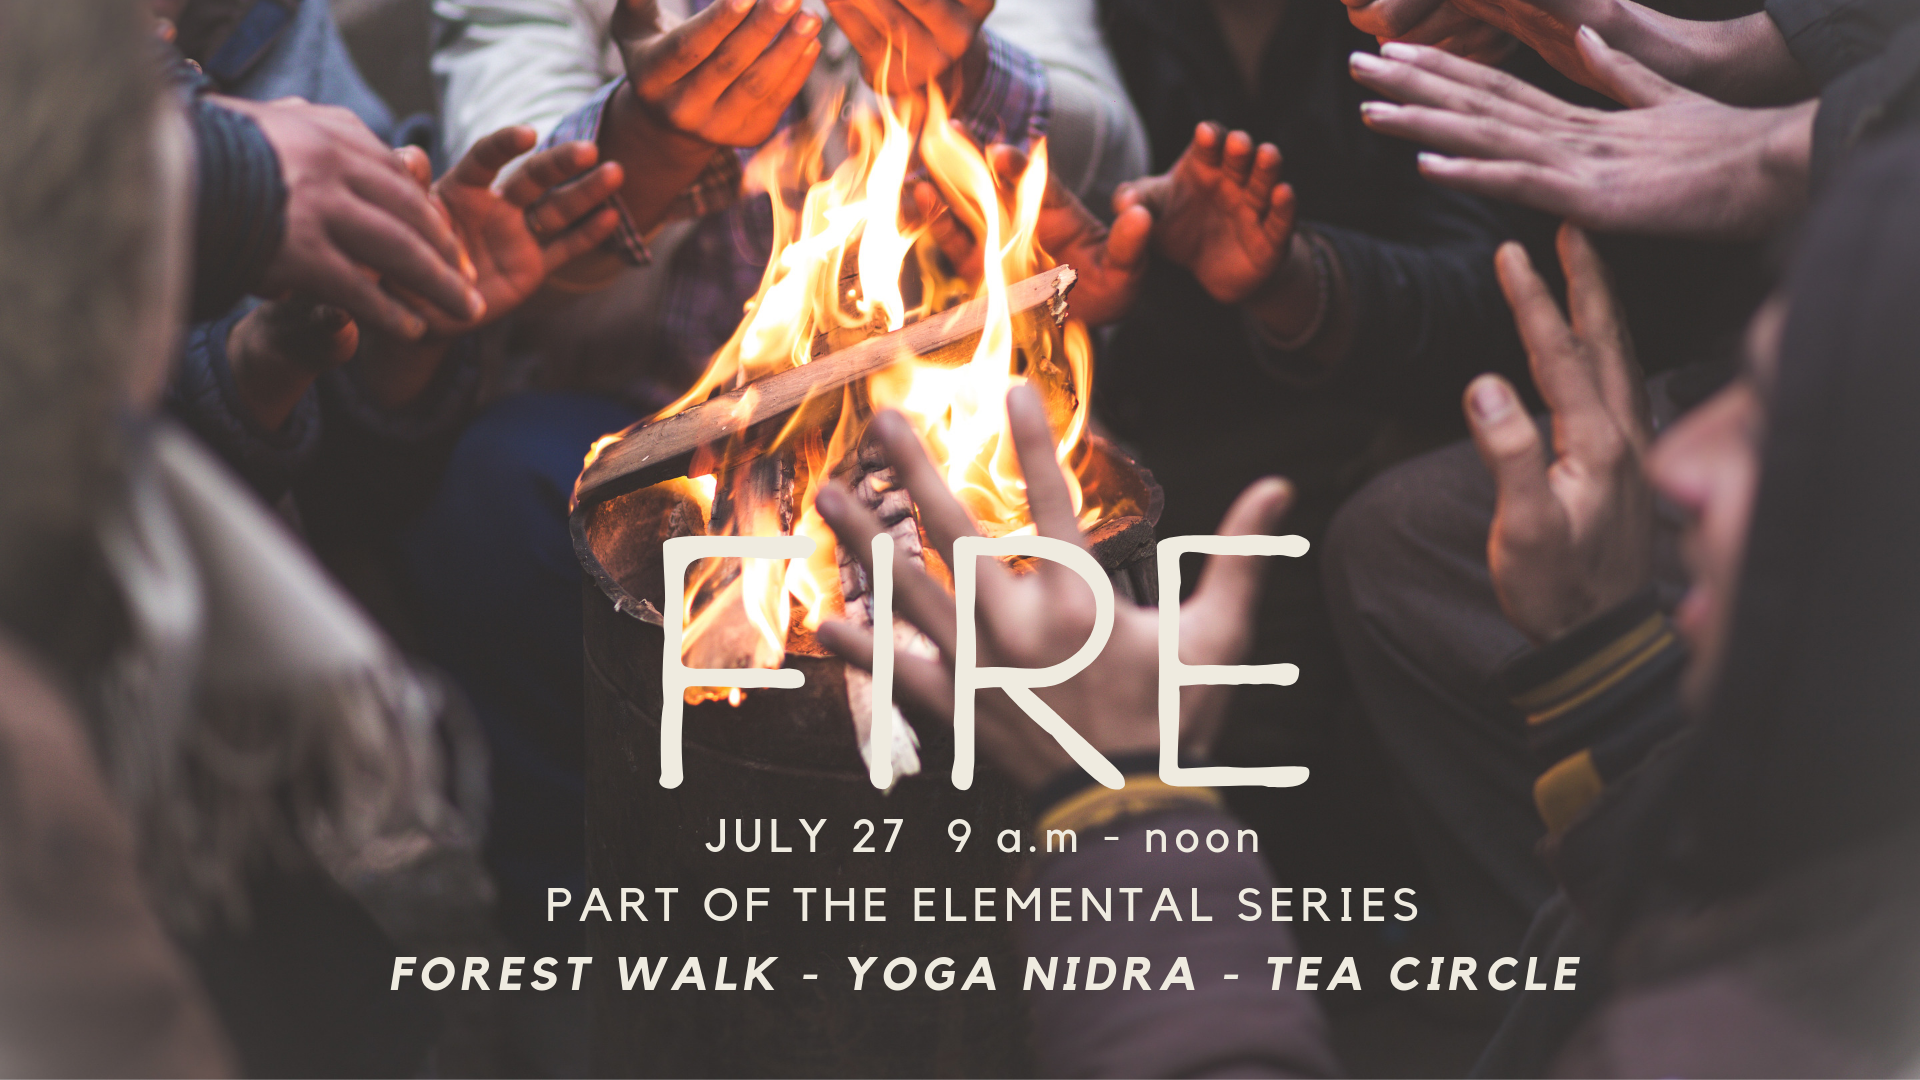 FIRE brought us  vision  and  creation . Bringing elements from the dark to the light. From the unseen to the seen. And teaching us how to breath power into our paths.